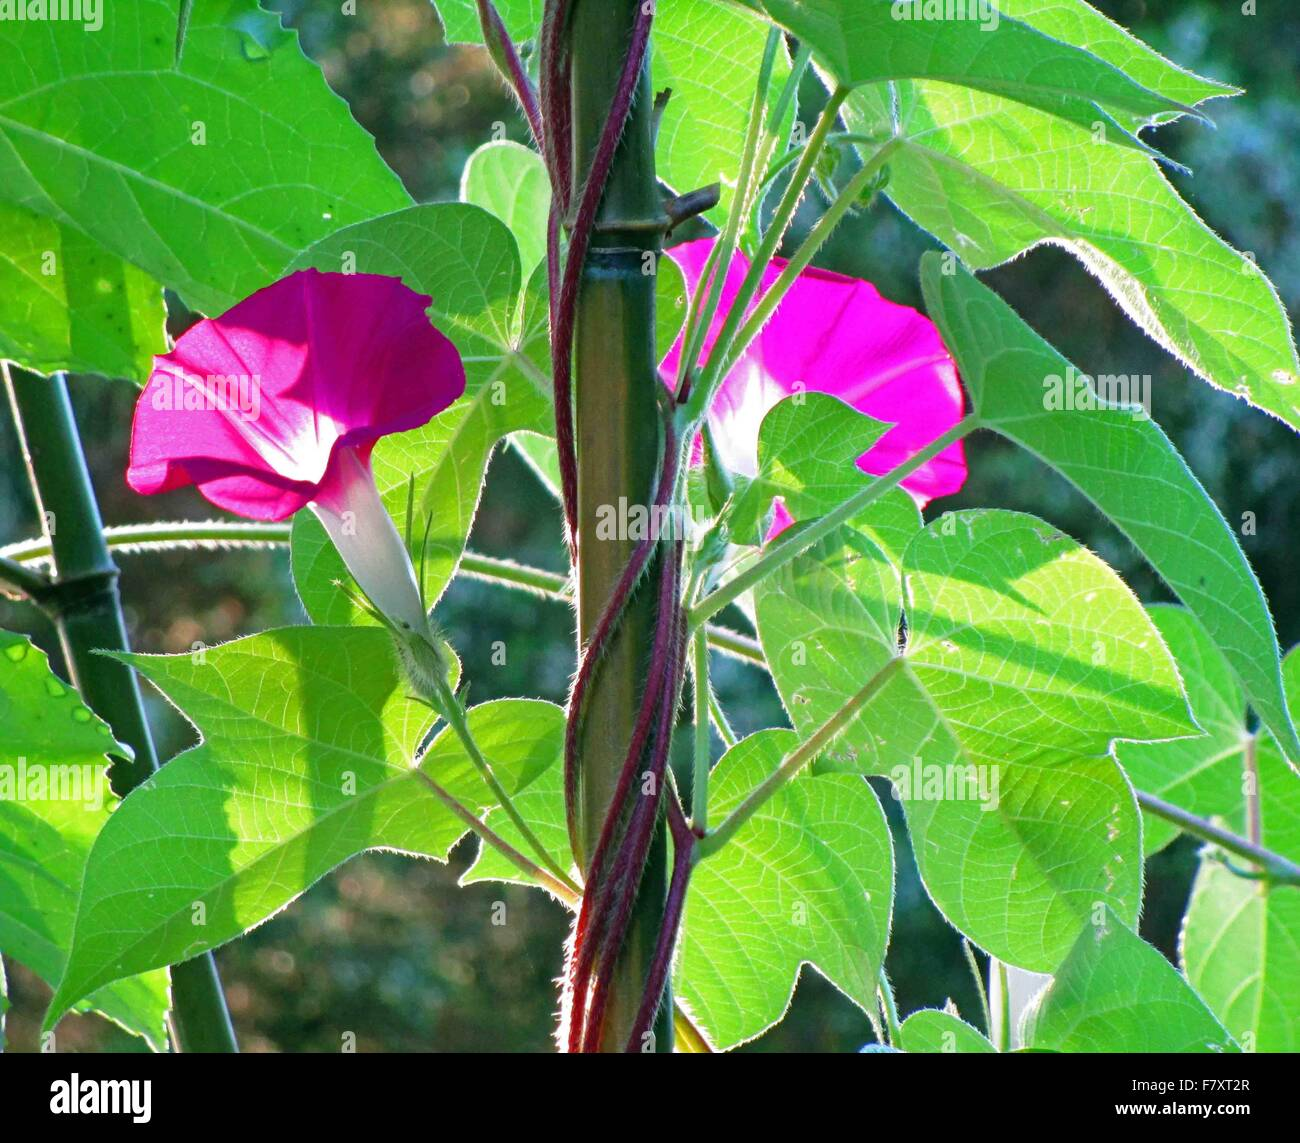 Digital color photograph of morning glories - Stock Image